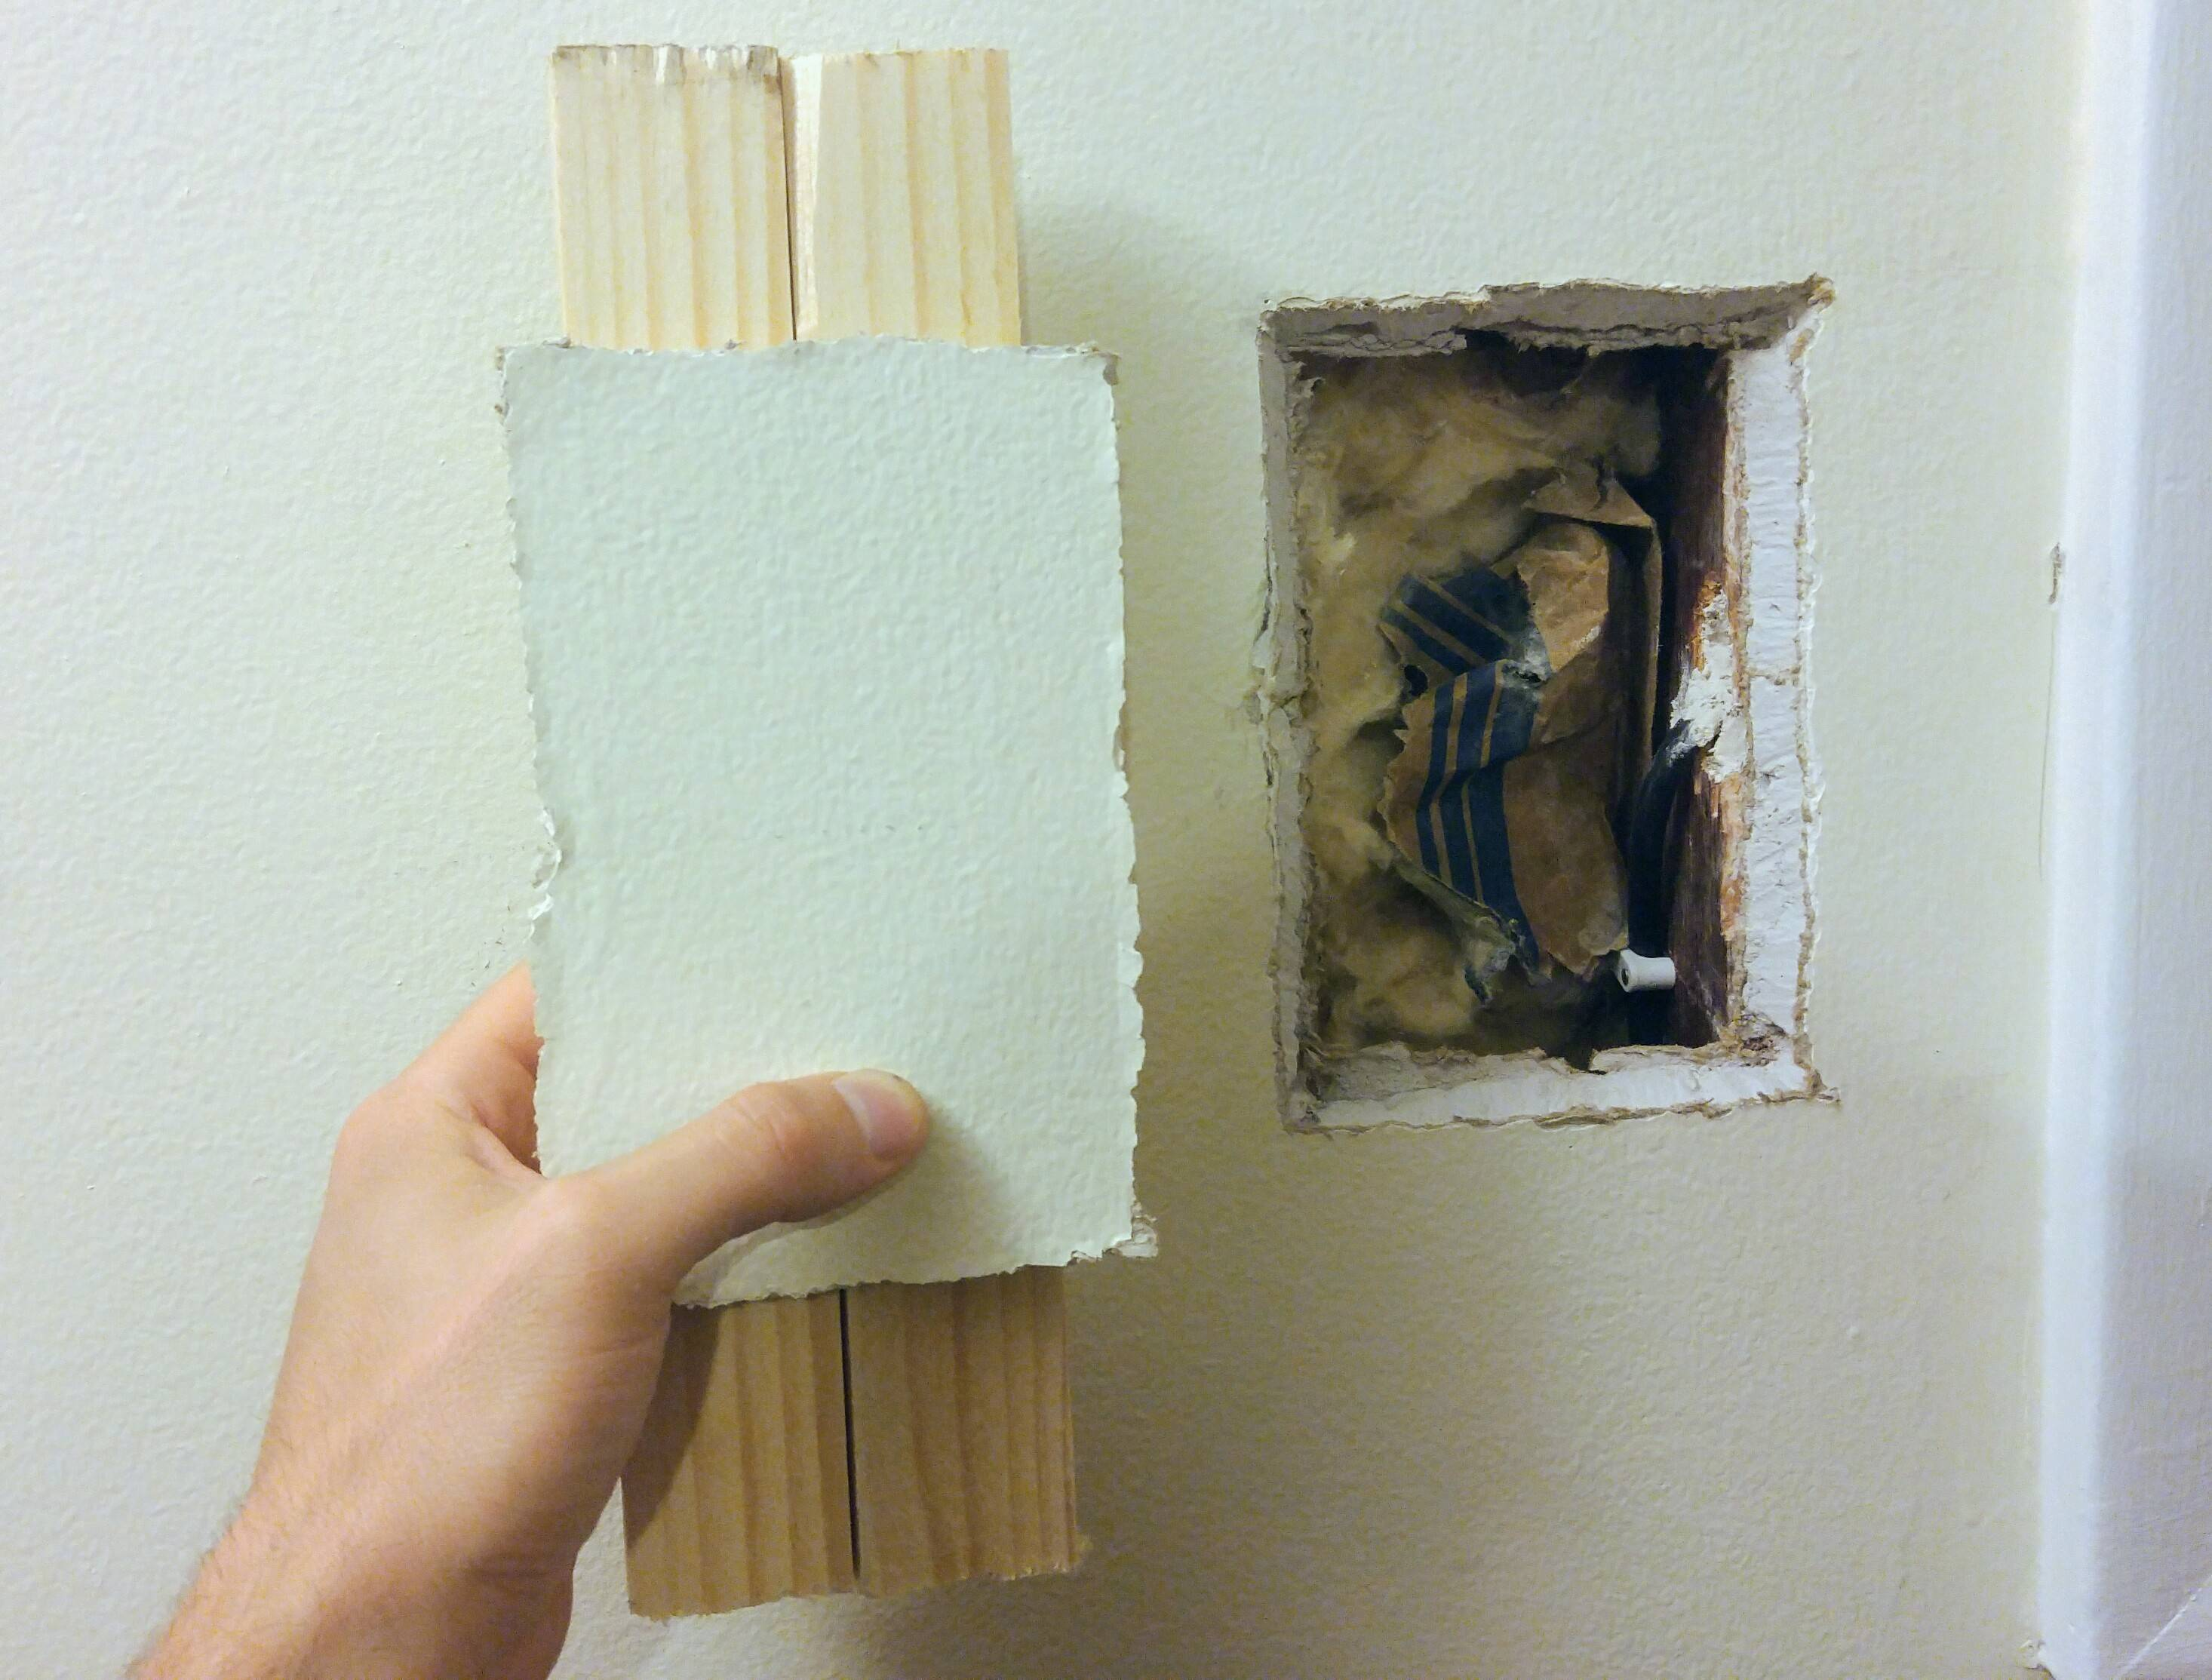 Patching Small Medium Drywall Hole With Wall Cutout Home Improvement Stack Exchange